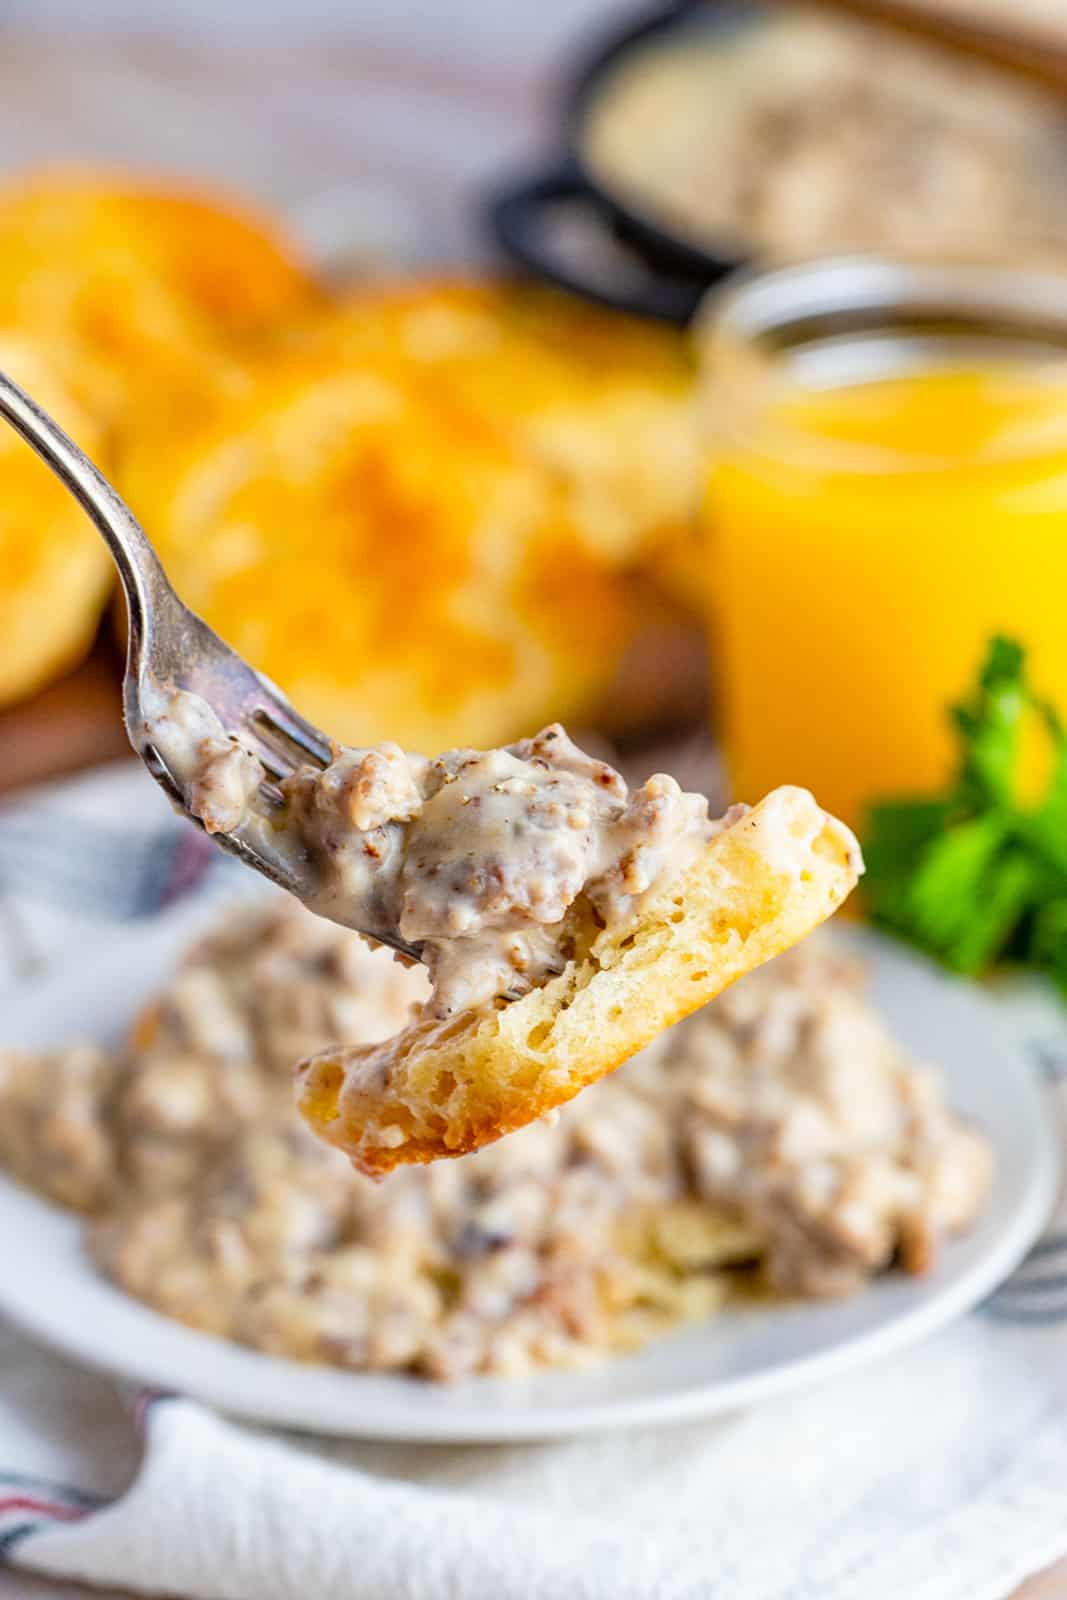 Fork holding a bite of the Biscuits and Gravy Recipe